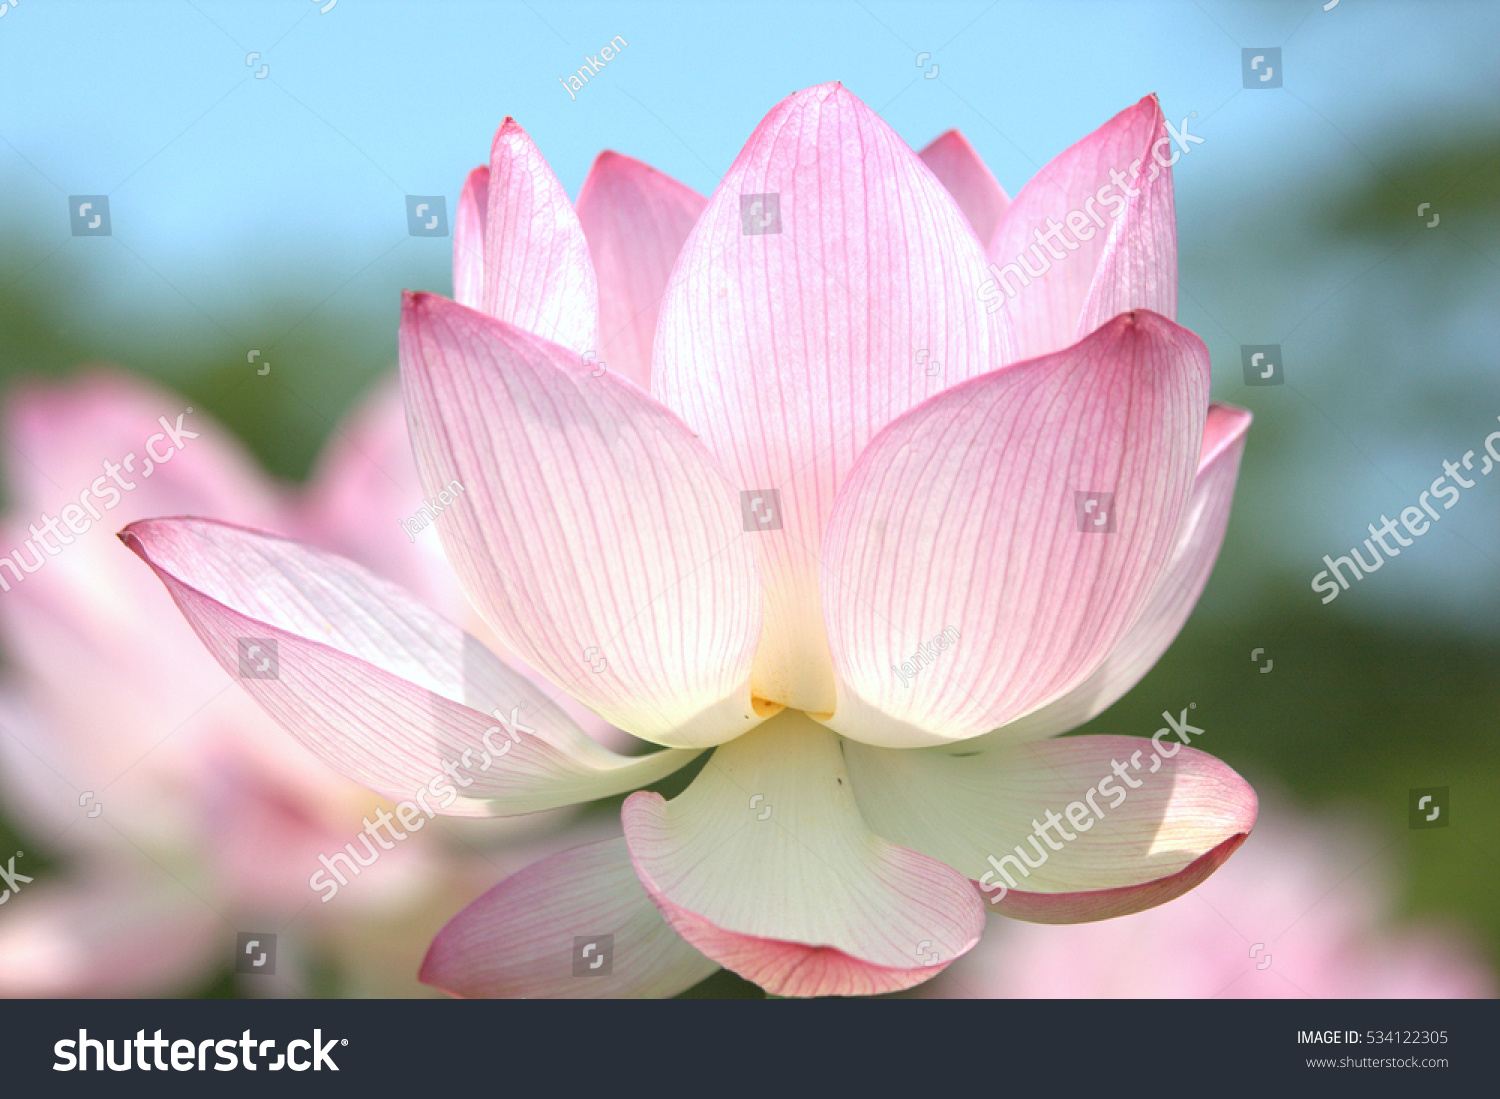 The Flowers Of A Lotus Ez Canvas